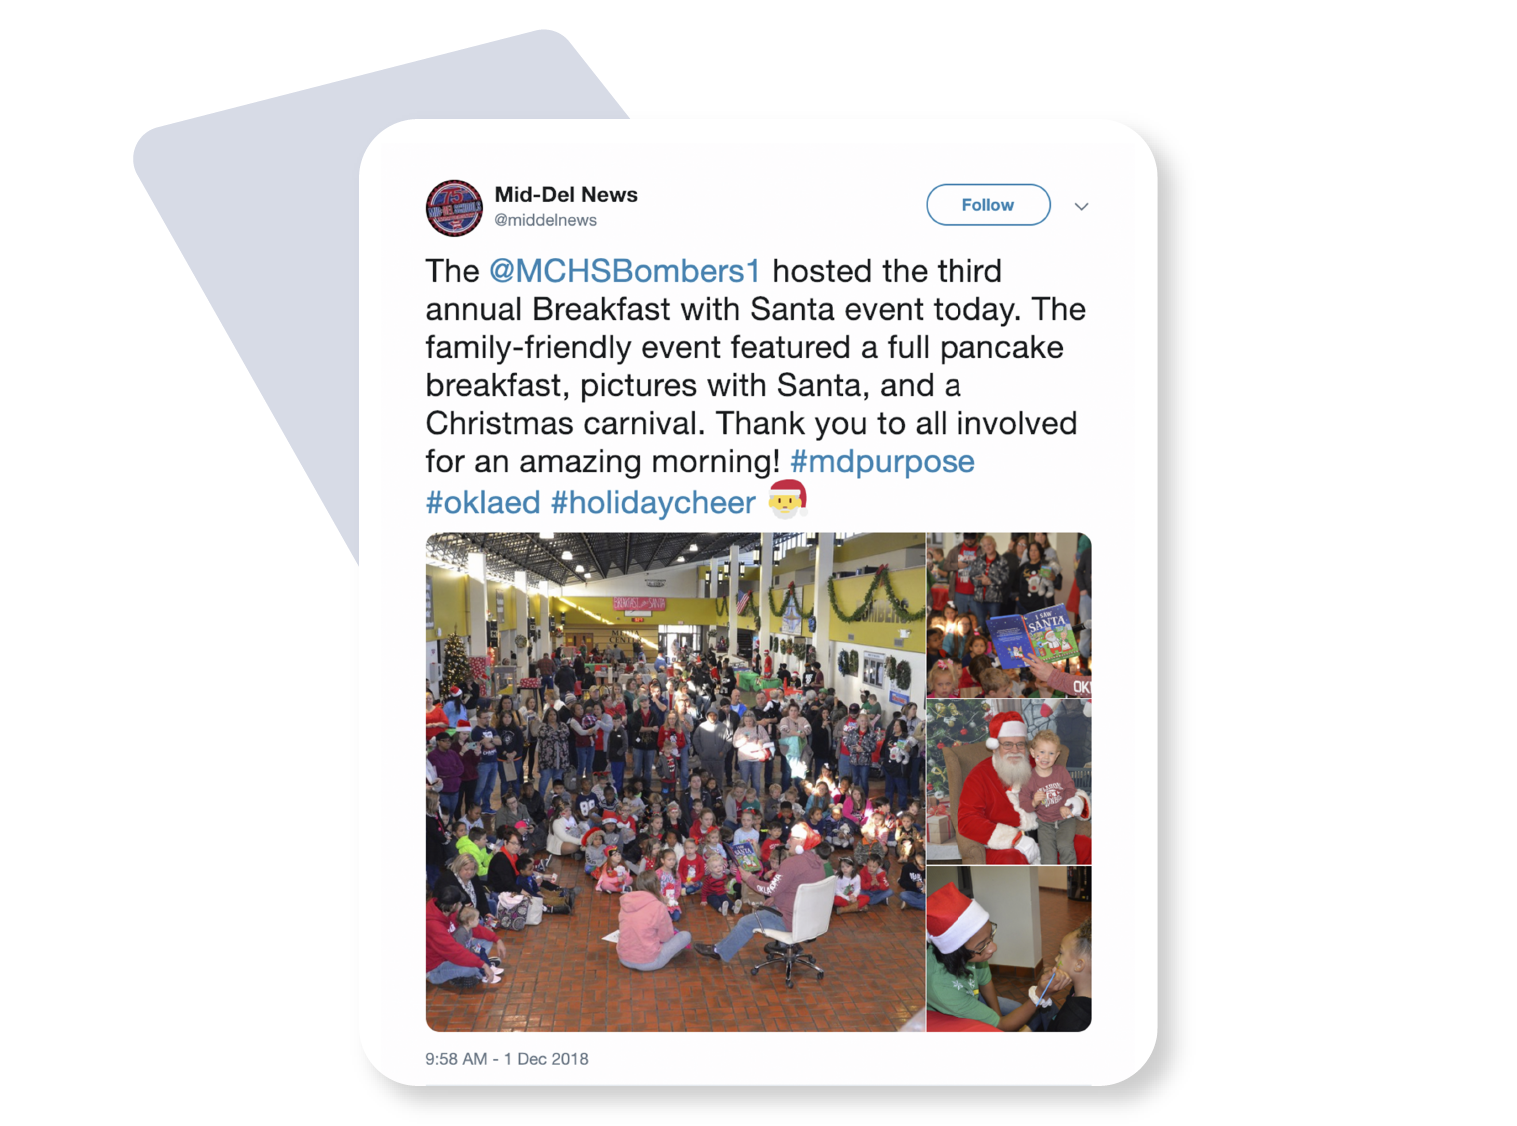 image showing tweet from Mid-Del news using the MD purpose hastag